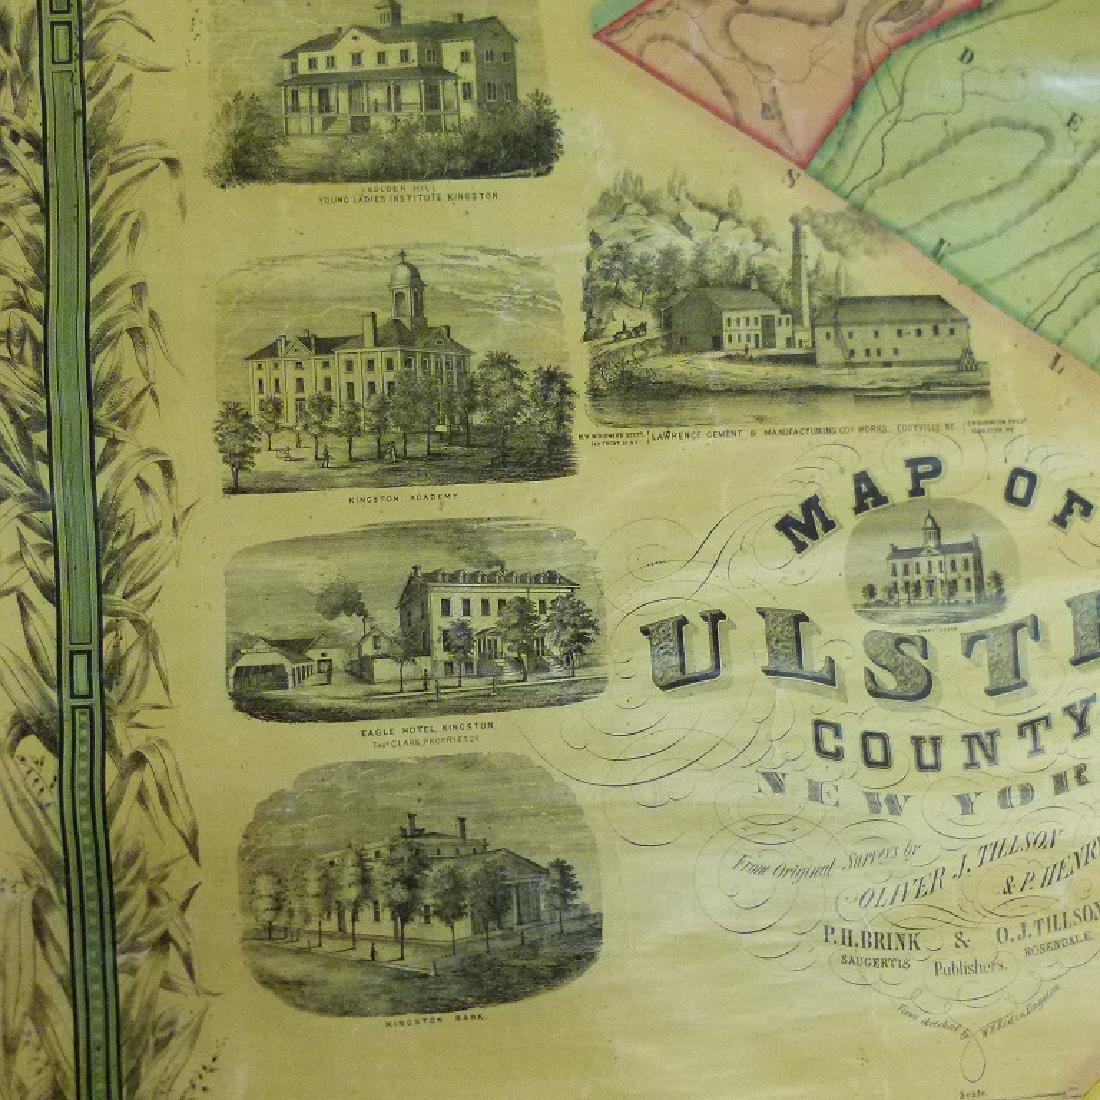 MAP OF ULSTER COUNTY NEW YORK, 1853 - 5